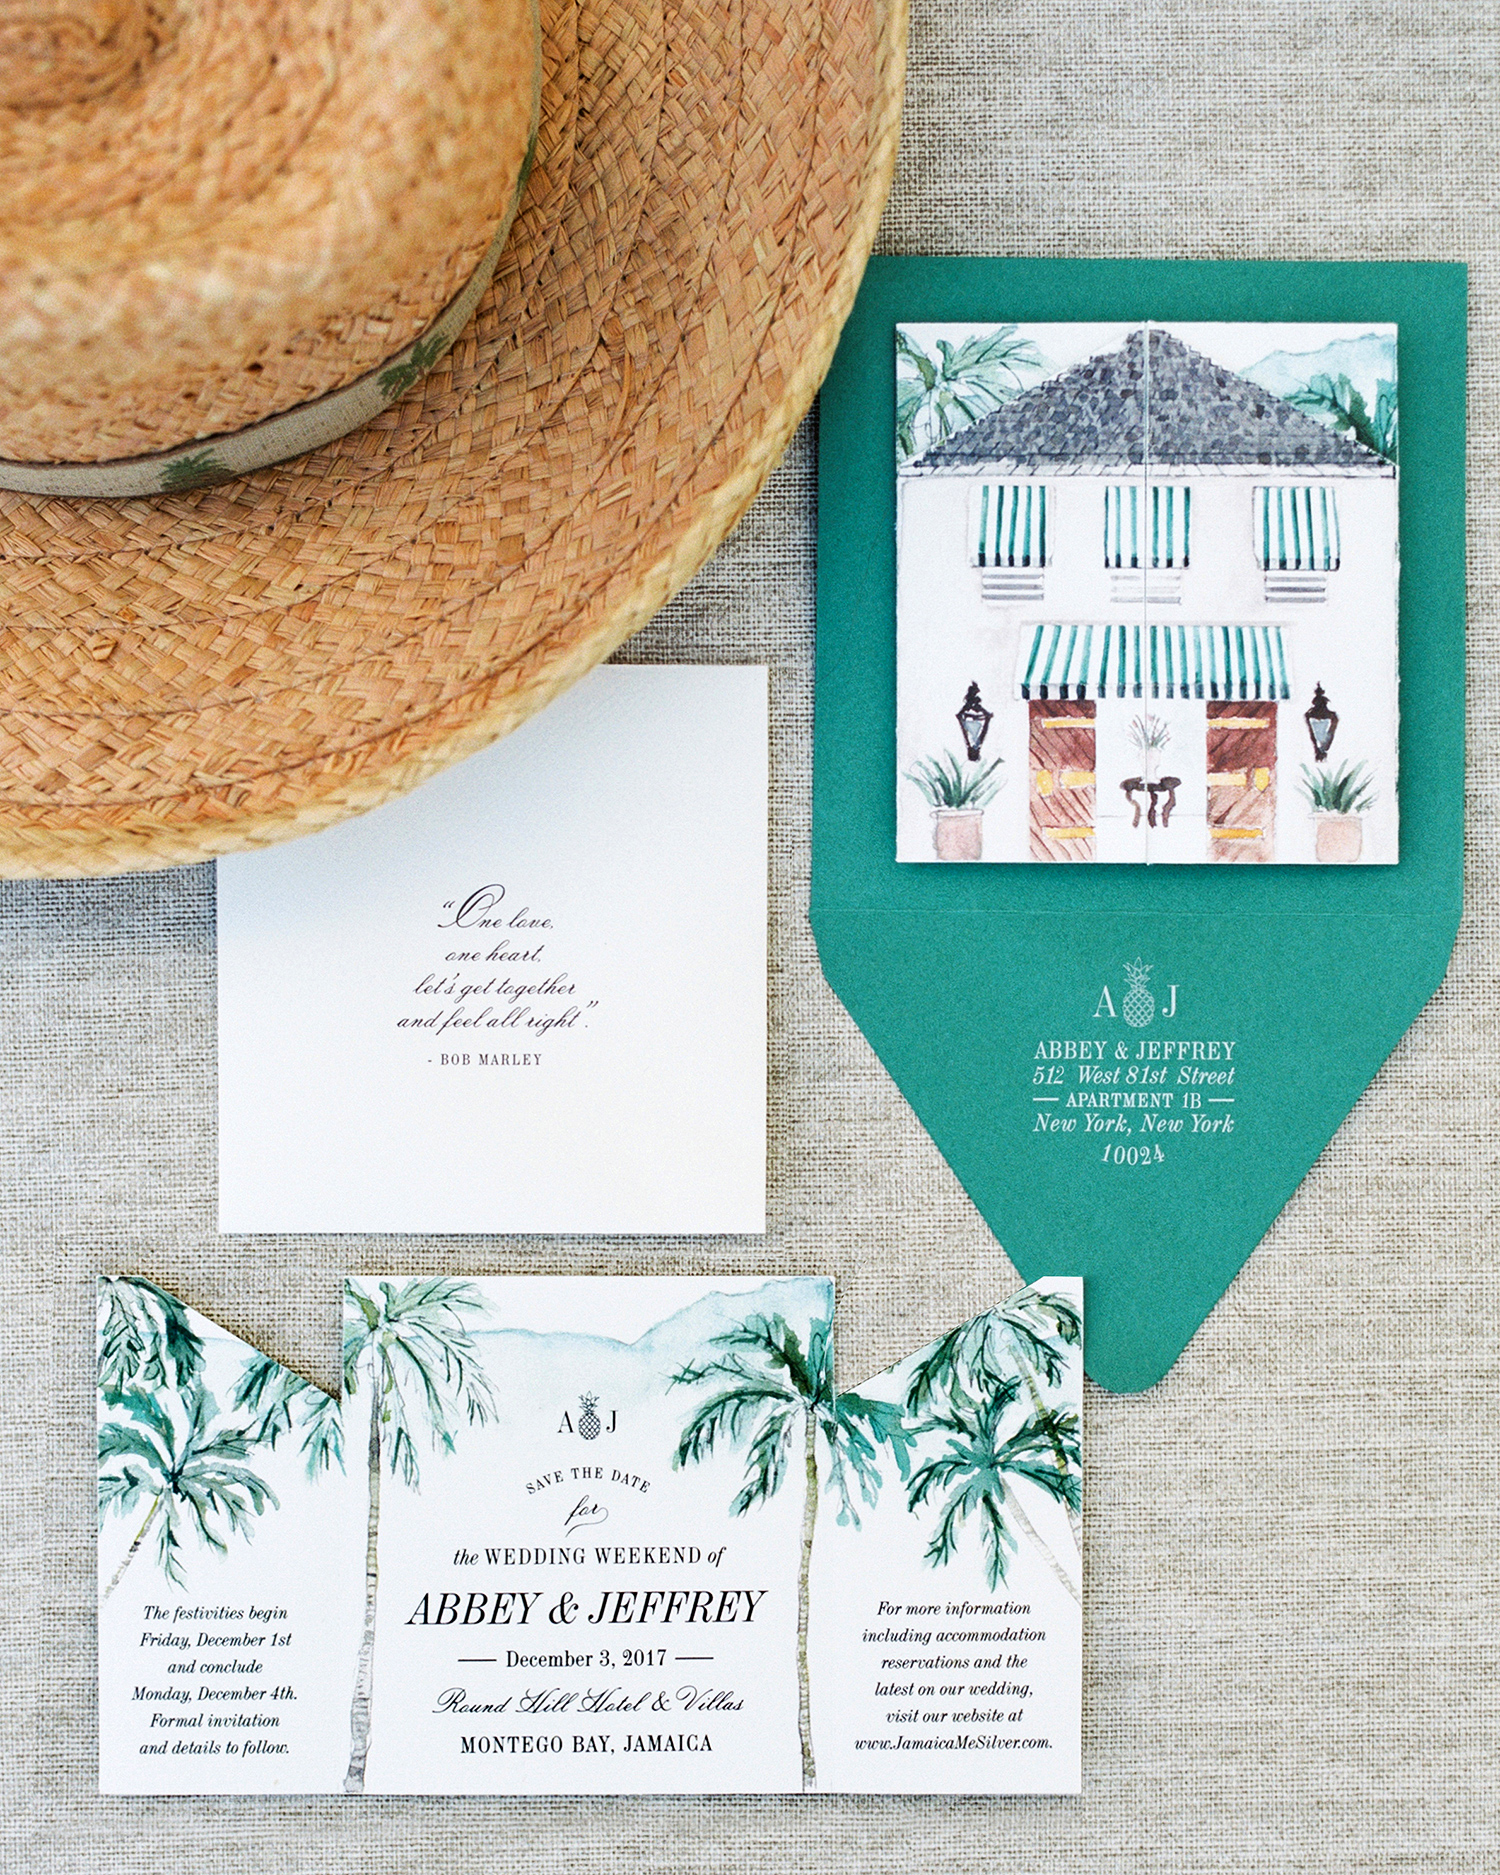 abbey jeffrey wedding tropical save-the-dates jamaica